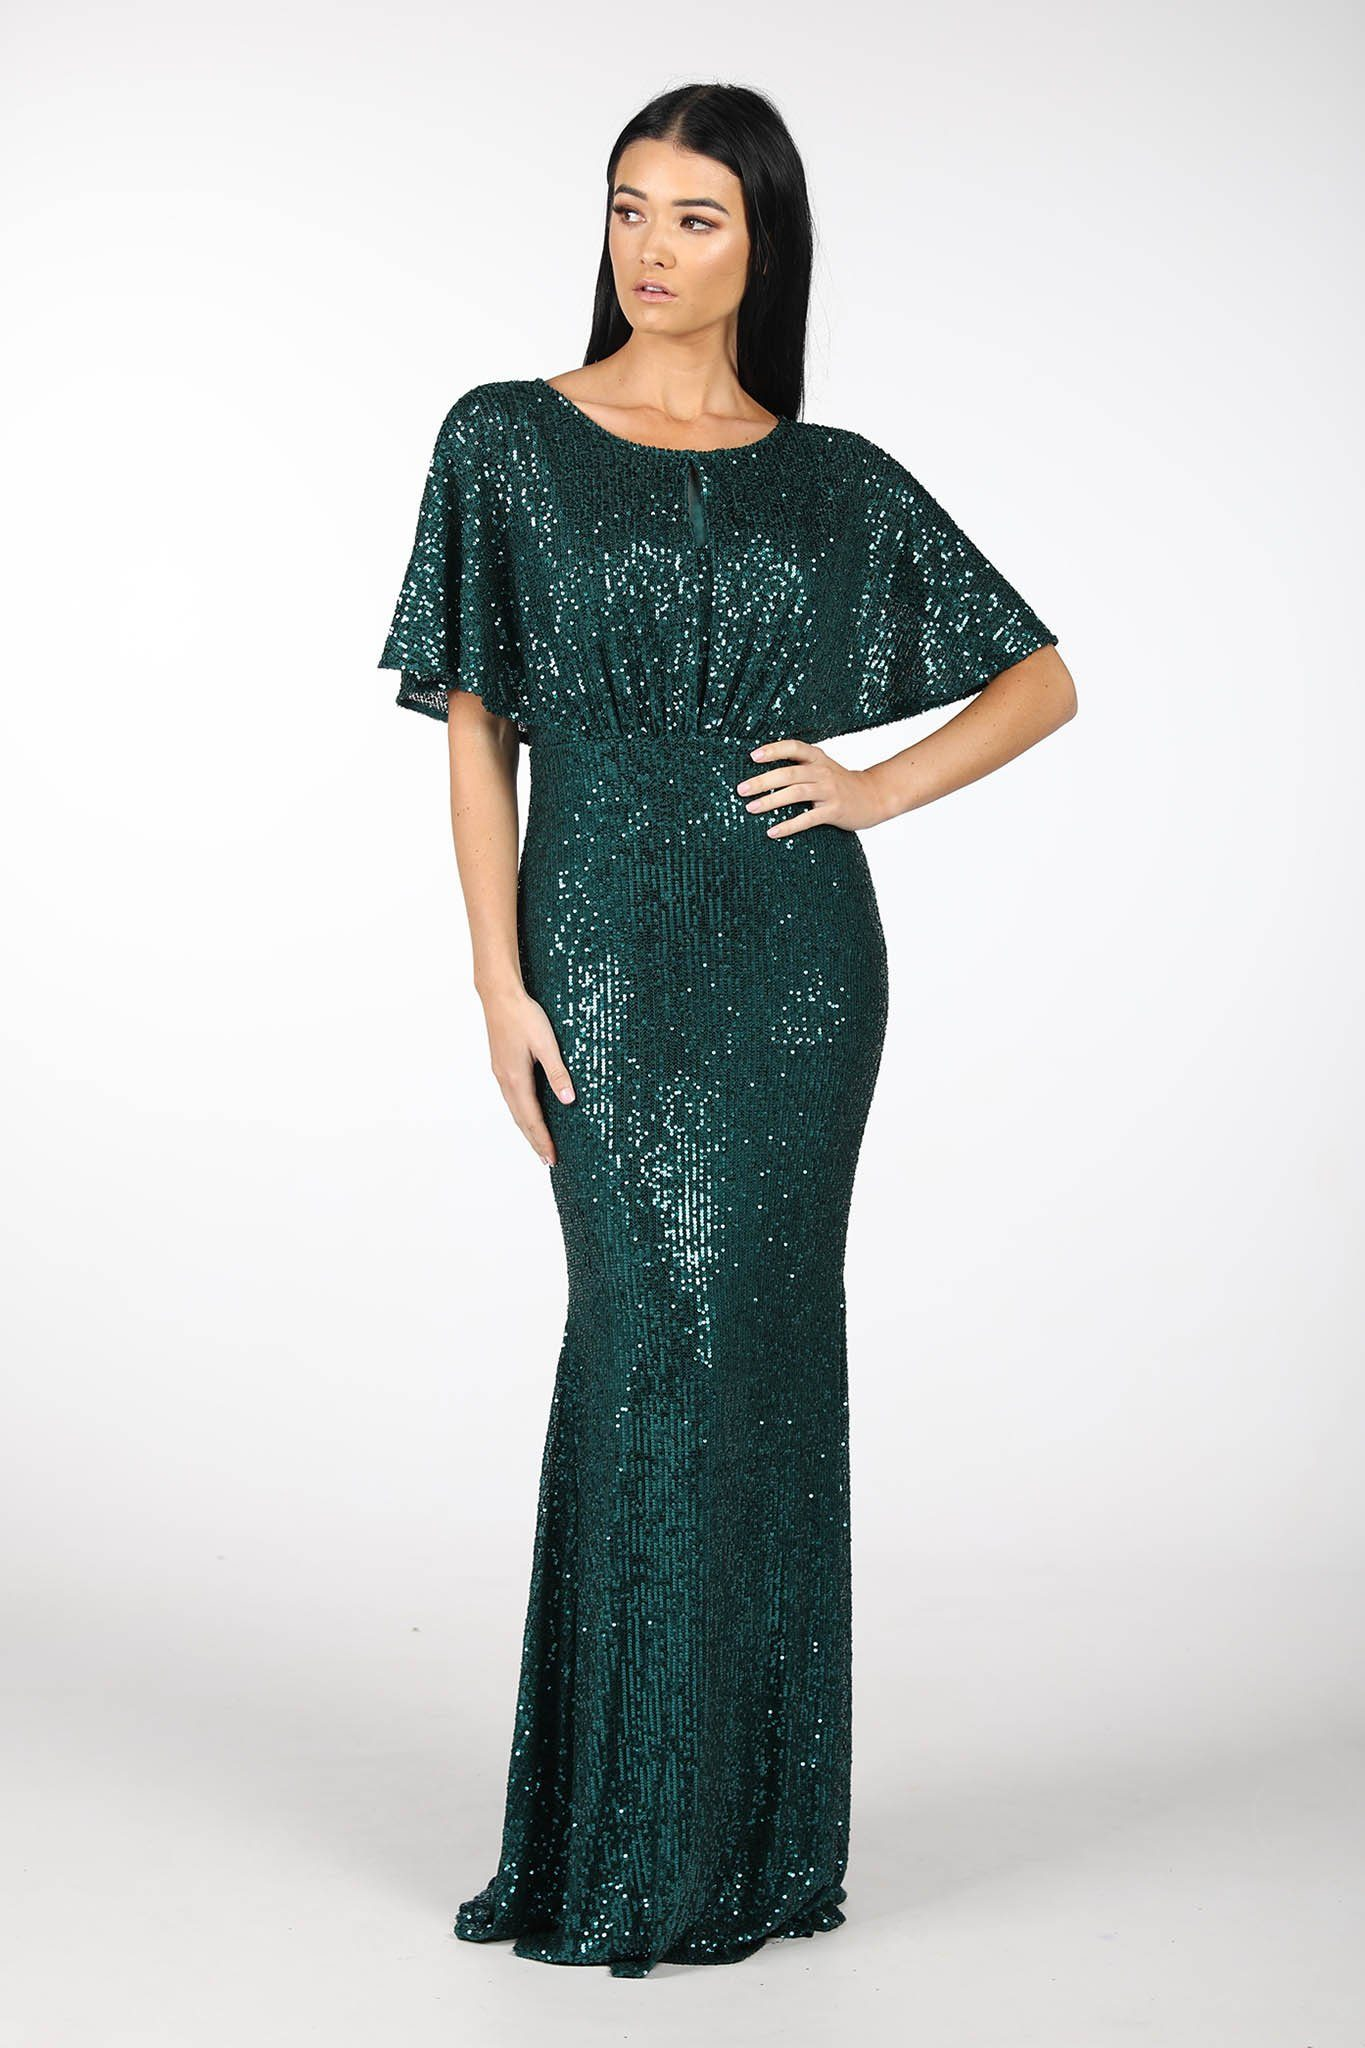 Emerald Green Sequin Fitted Full Length Maxi Dress with Butterfly Sleeves